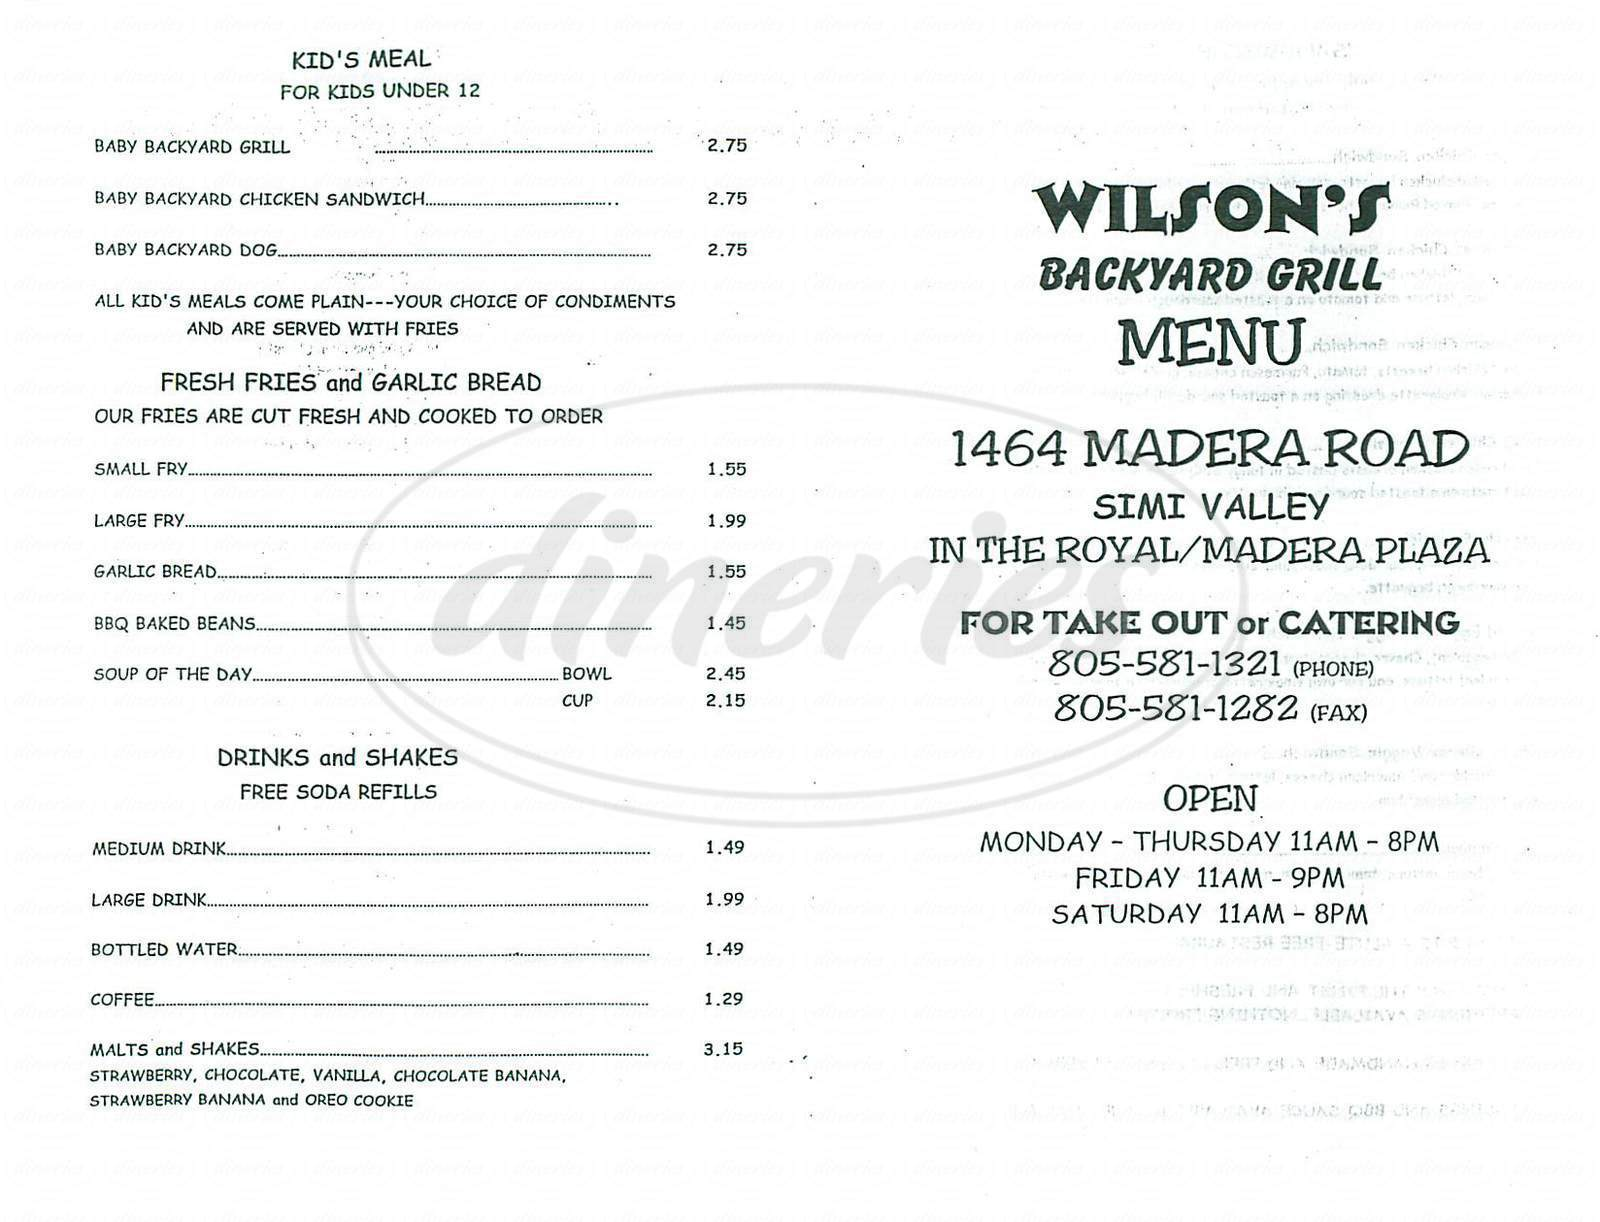 menu for Wilsons Backyard Grill